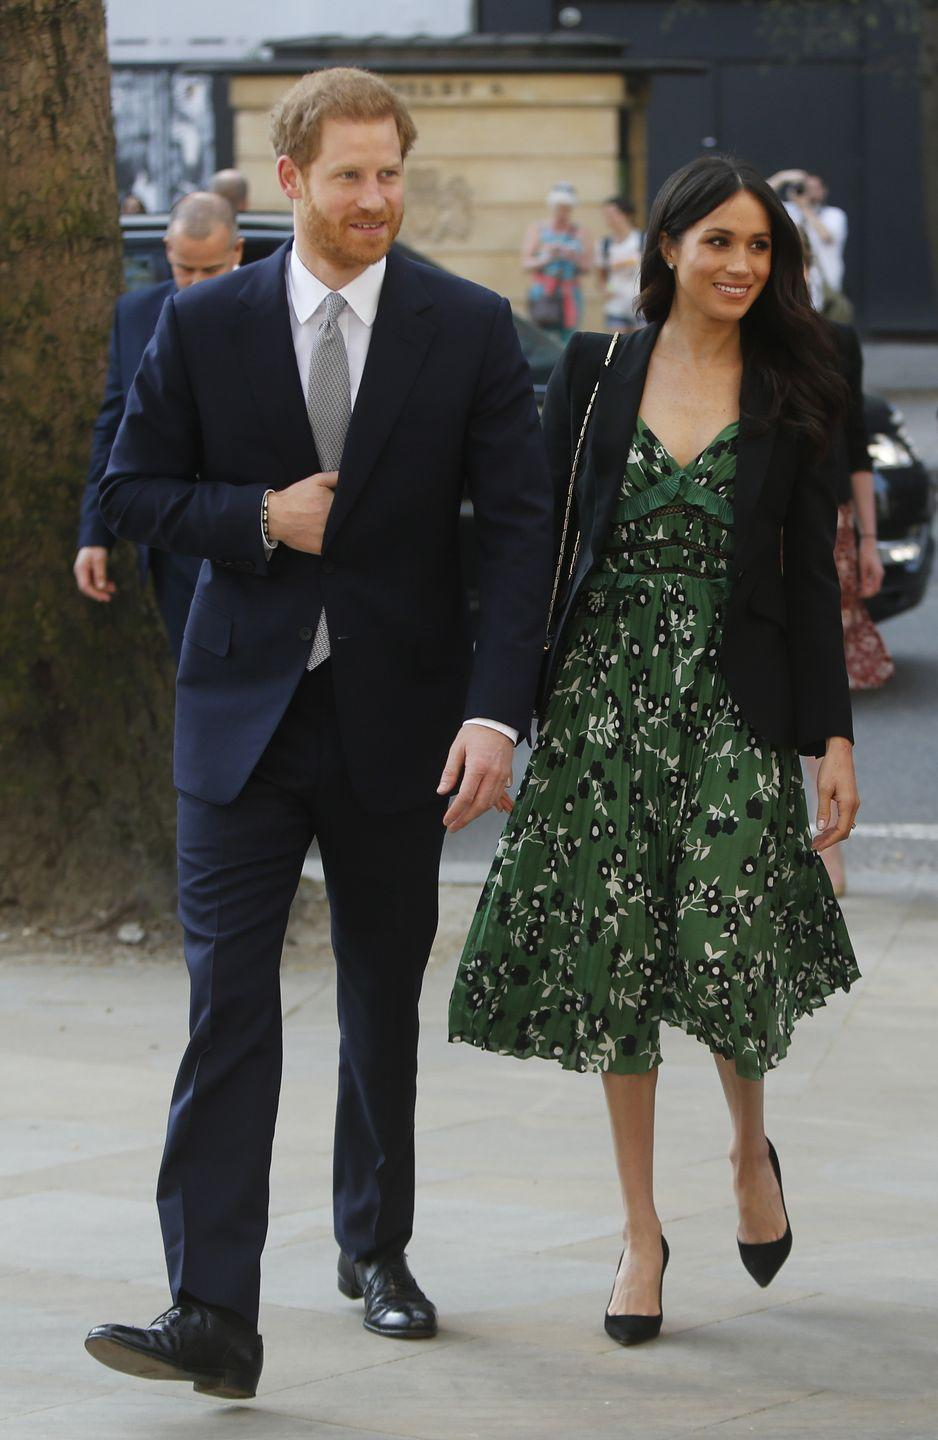 """<p>Meghan opted for a <a href=""""https://go.redirectingat.com?id=74968X1596630&url=https%3A%2F%2Fwww.harrods.com%2Fen-gb%2Fself-portrait%2Fcold-shoulder-floral-dress-p000000000005821467&sref=https%3A%2F%2Fwww.townandcountrymag.com%2Fstyle%2Ffashion-trends%2Fg3272%2Fmeghan-markle-preppy-style%2F"""" rel=""""nofollow noopener"""" target=""""_blank"""" data-ylk=""""slk:vibrant green dress from Self Portrait"""" class=""""link rapid-noclick-resp"""">vibrant green dress from Self Portrait</a> paired with a dark blazer and black pointy-toe pumps for an <a href=""""https://www.townandcountrymag.com/society/tradition/a12044088/what-are-the-invictus-games-competition/"""" rel=""""nofollow noopener"""" target=""""_blank"""" data-ylk=""""slk:Invictus Games event in London"""" class=""""link rapid-noclick-resp"""">Invictus Games event in London</a>.</p><p><a class=""""link rapid-noclick-resp"""" href=""""https://go.redirectingat.com?id=74968X1596630&url=https%3A%2F%2Fwww.neimanmarcus.com%2FSelf-Portrait-Cold-Shoulder-Floral-Print-Midi-Dress-with-Pleats-Frills%2Fprod206200208%2Fp.prod&sref=https%3A%2F%2Fwww.townandcountrymag.com%2Fstyle%2Ffashion-trends%2Fg3272%2Fmeghan-markle-preppy-style%2F"""" rel=""""nofollow noopener"""" target=""""_blank"""" data-ylk=""""slk:SHOP NOW"""">SHOP NOW</a> <em>Self-Portrait Cold-Shoulder Floral-Print Midi Dress, $510</em><br></p>"""